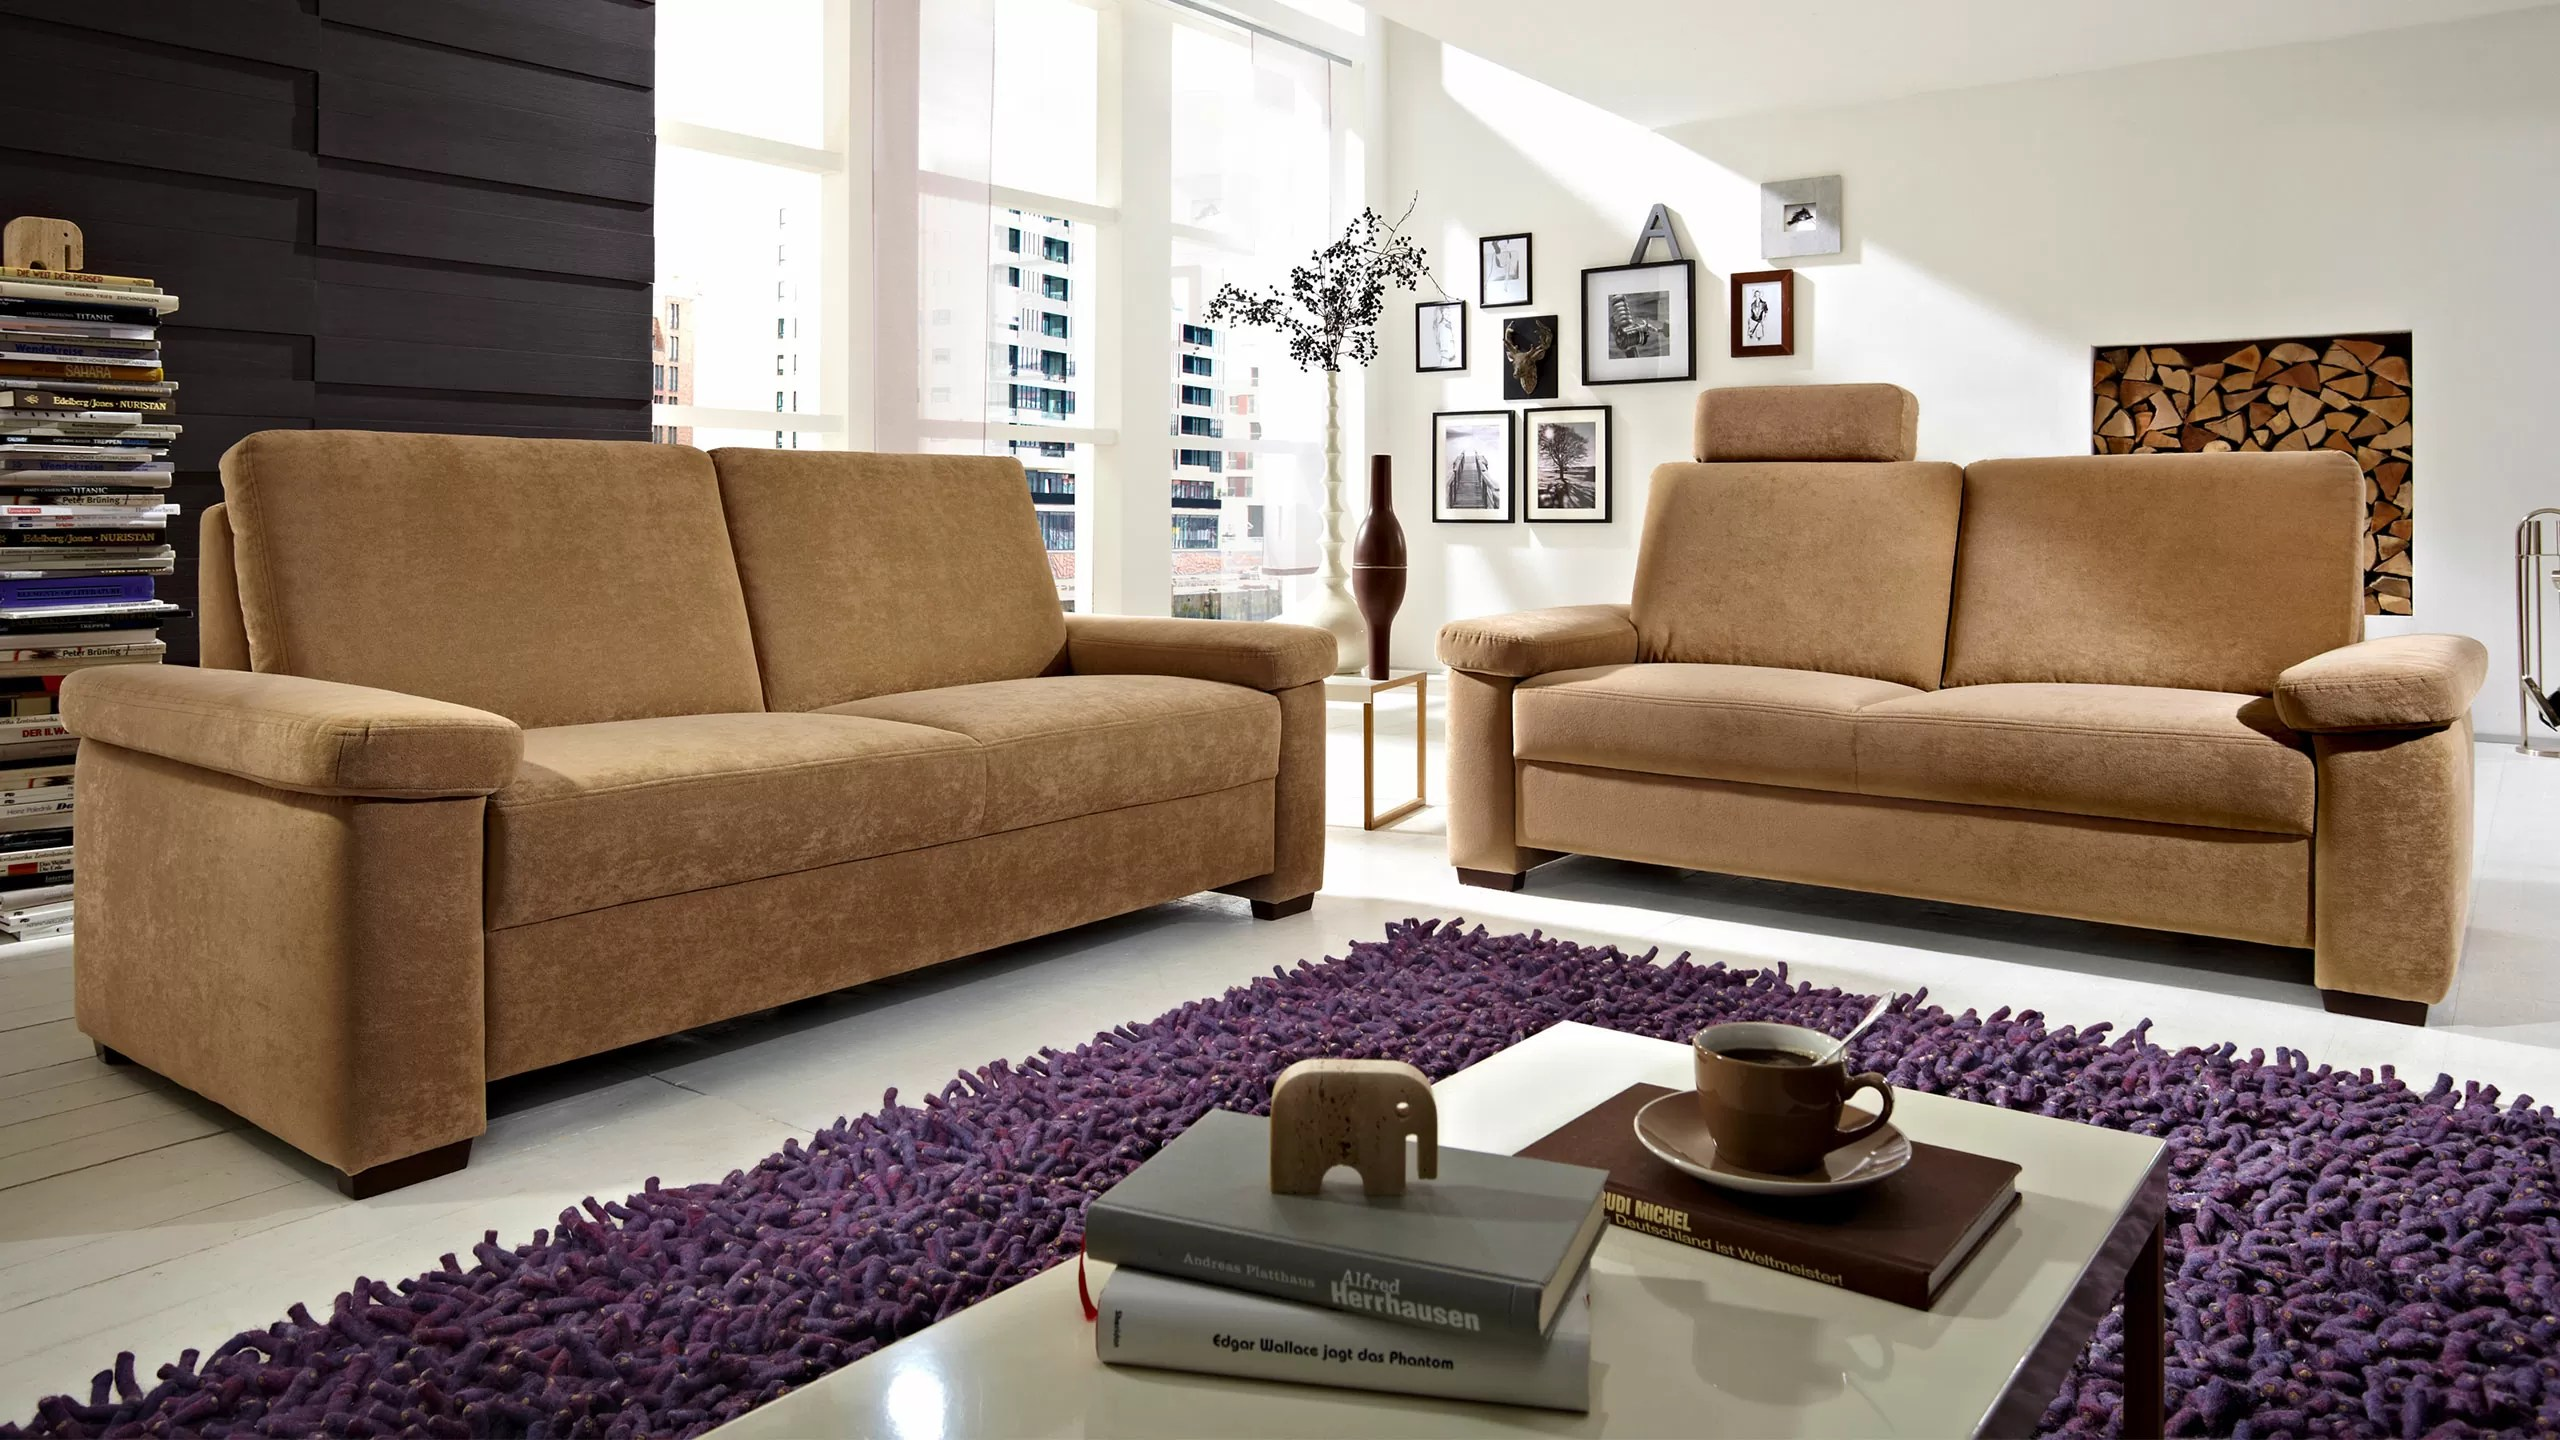 Couch Stoff Morena Sofa Multipolster